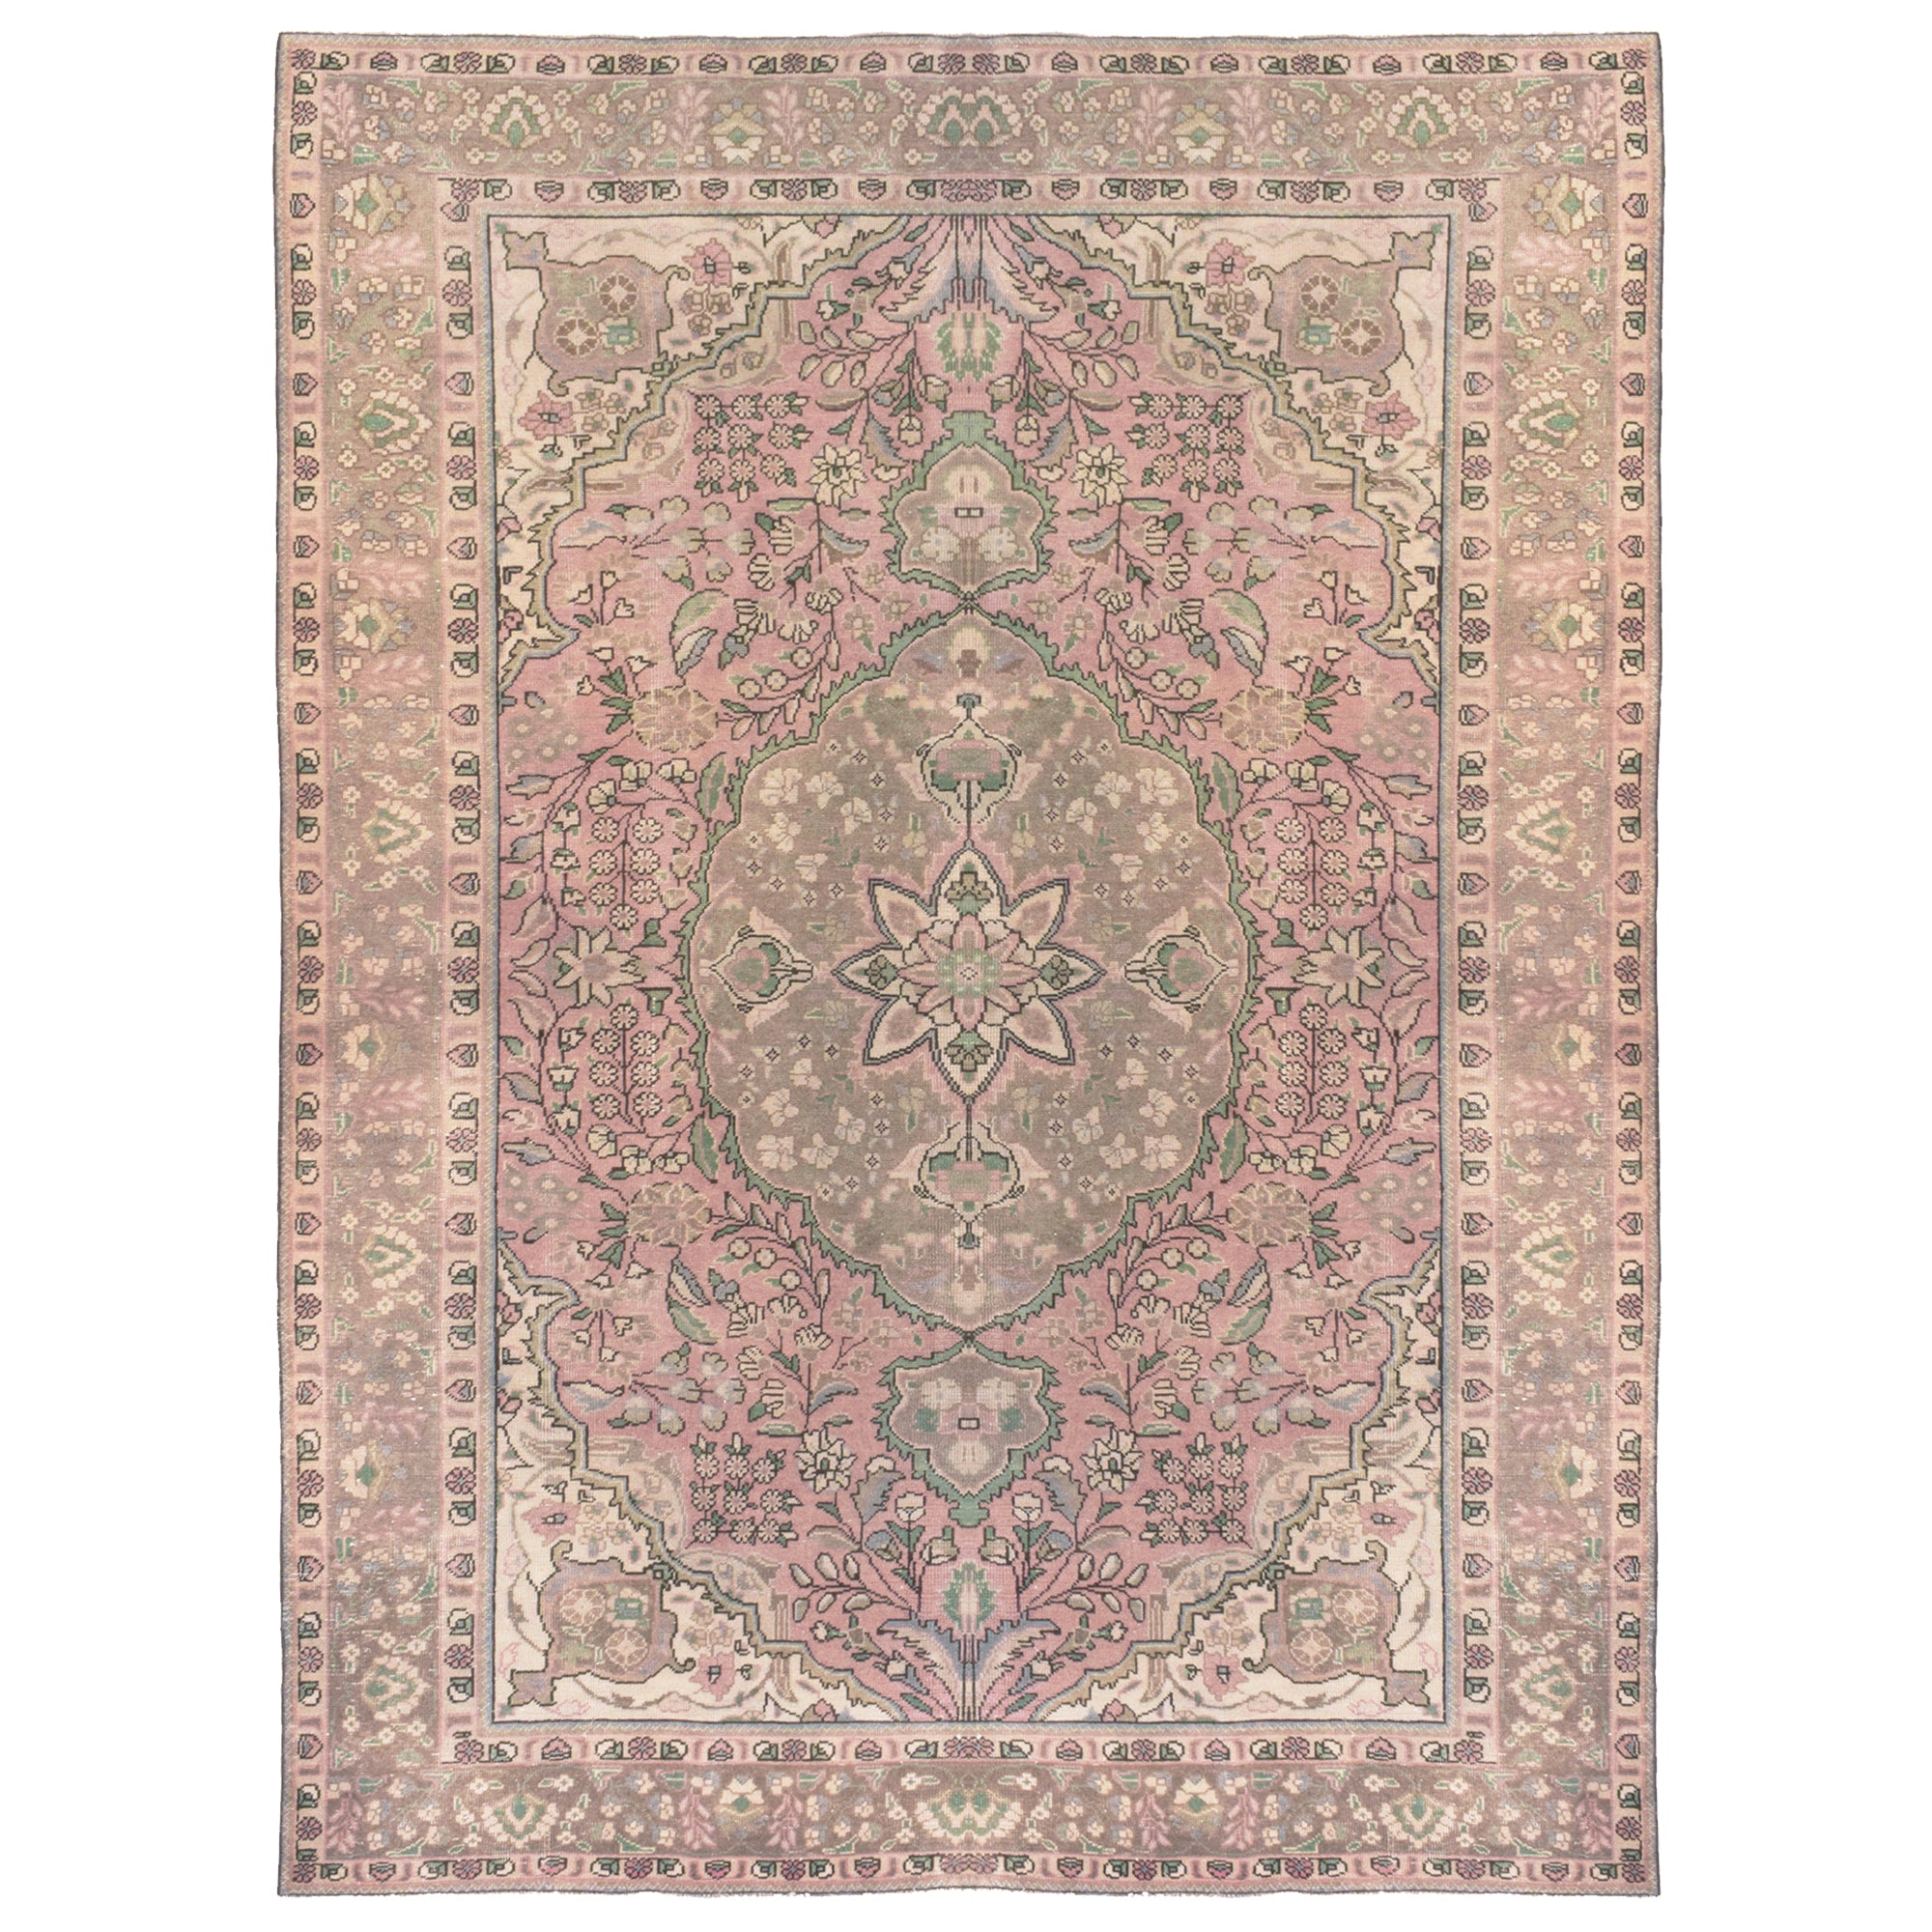 yonder-living-vintage-turkish-rug-floral-large-red-blue-green